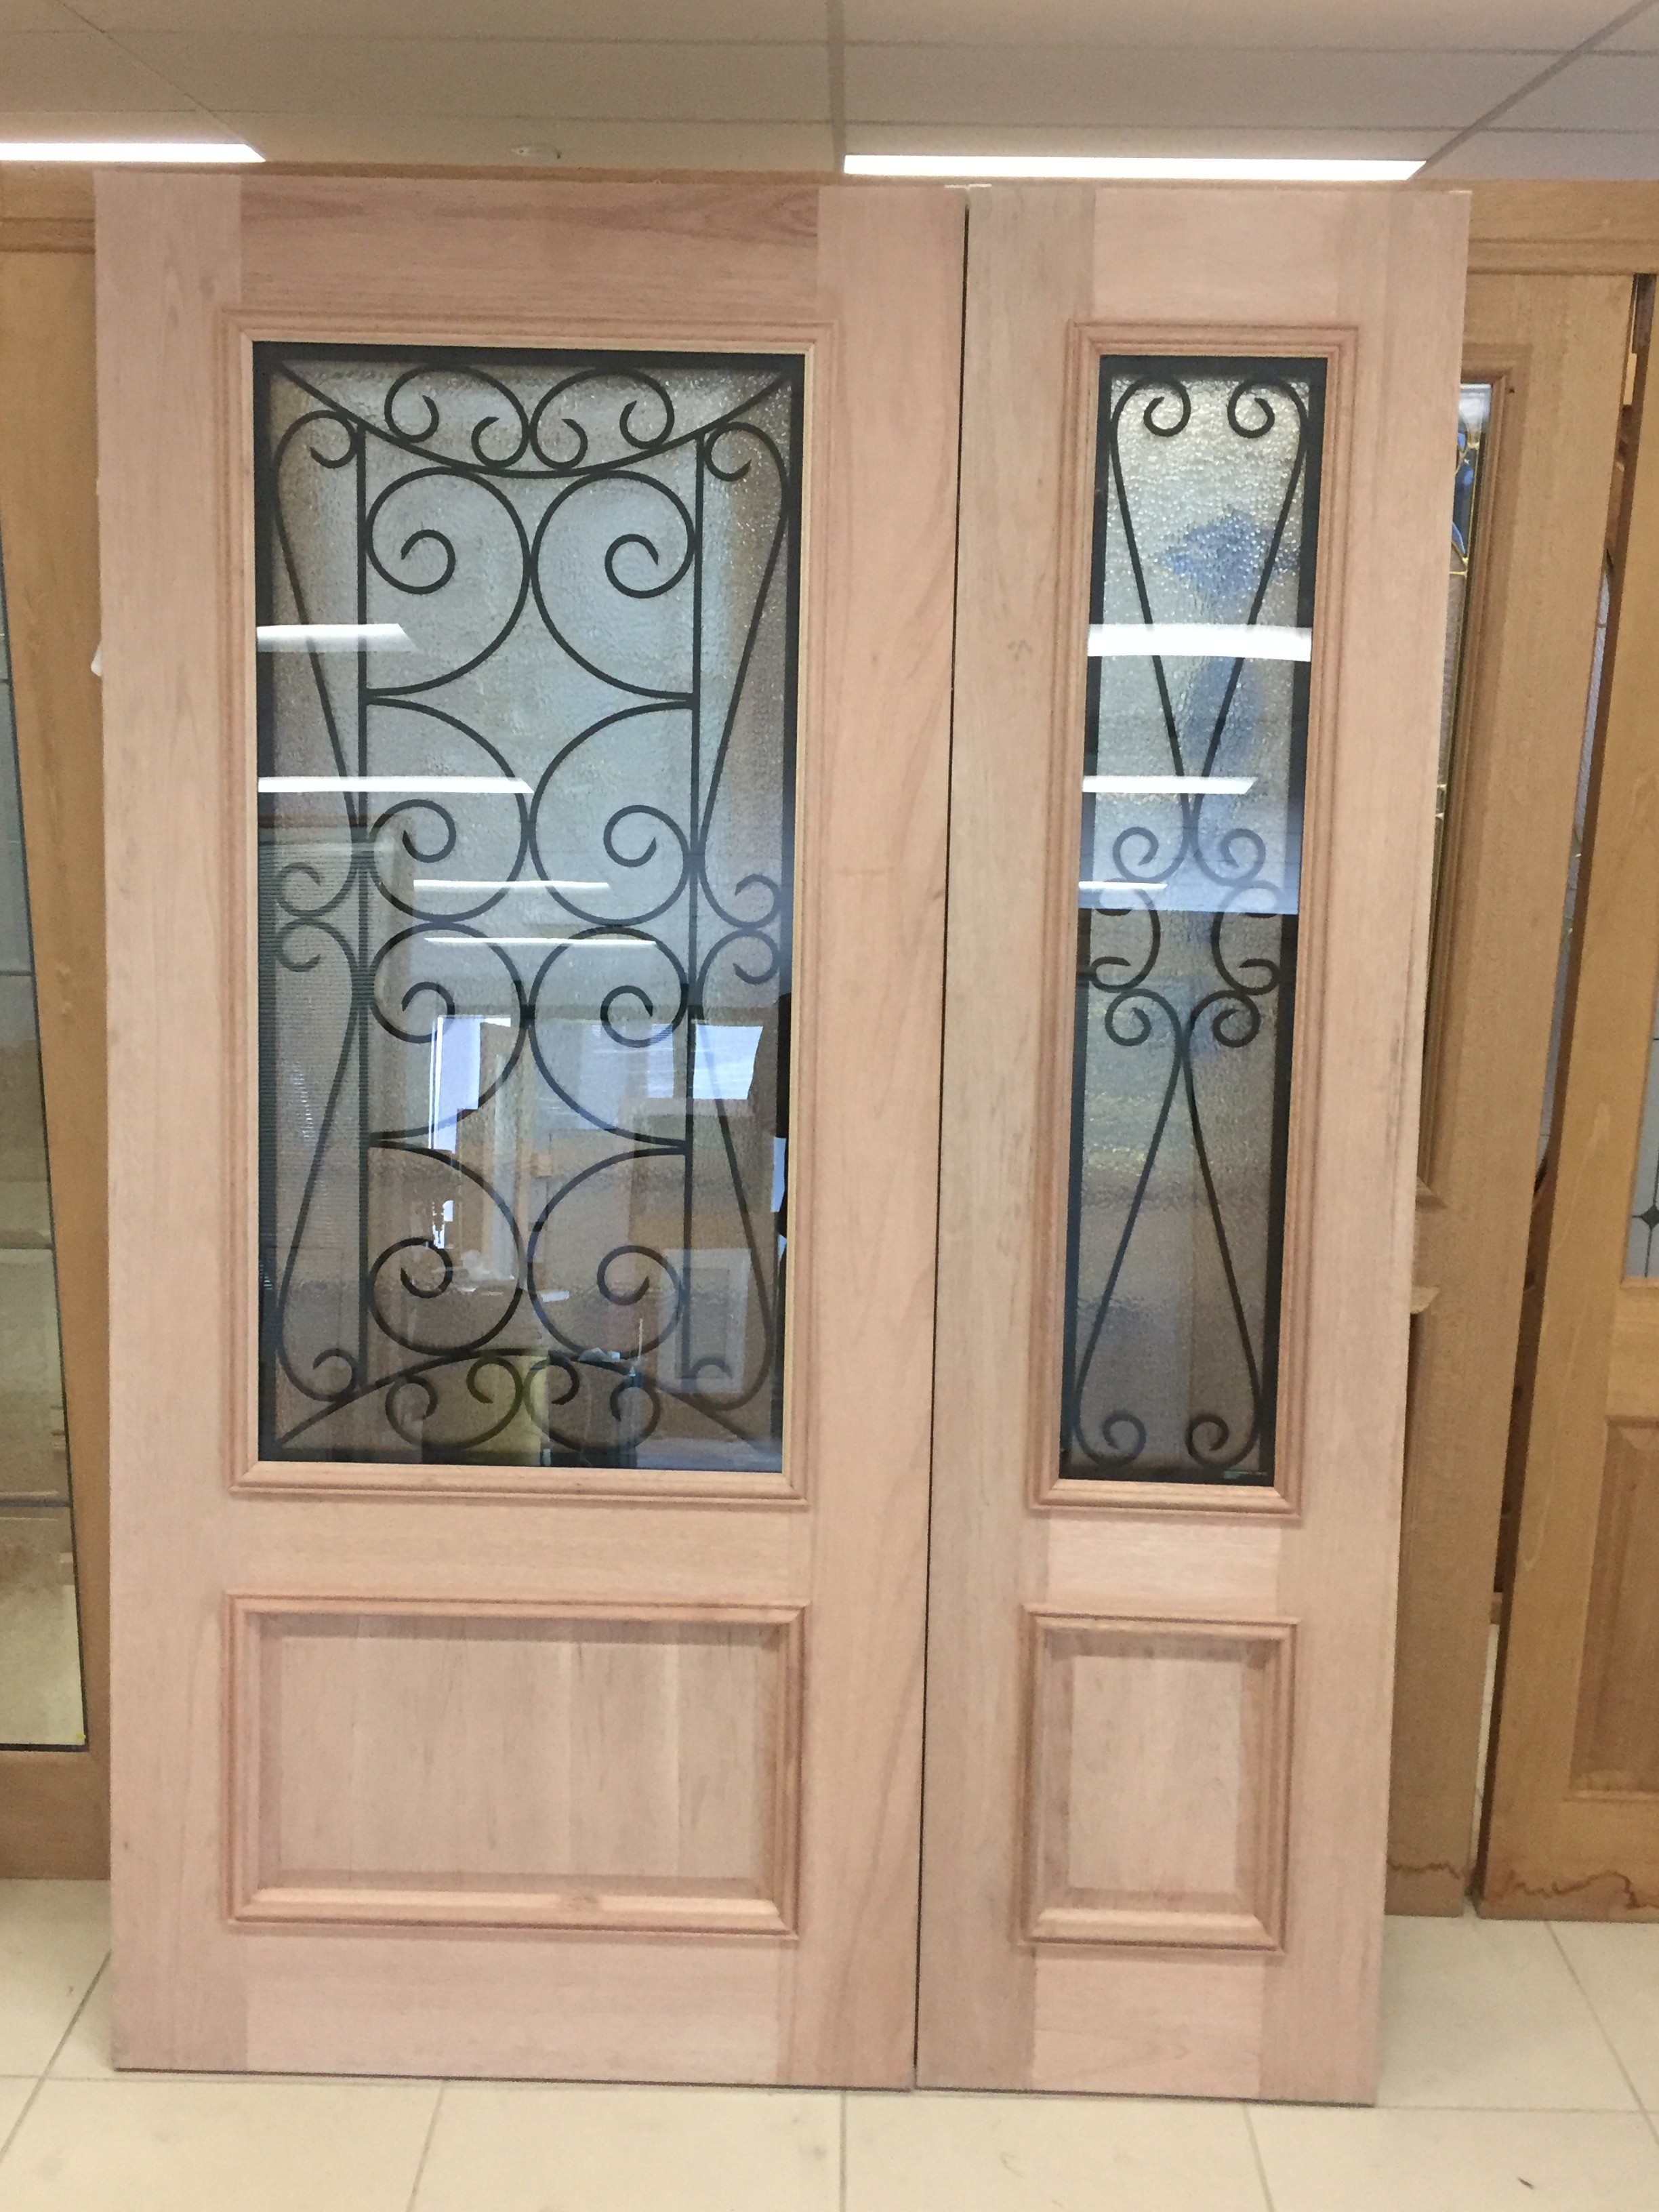 2 - Wrought Iron Entry Doors